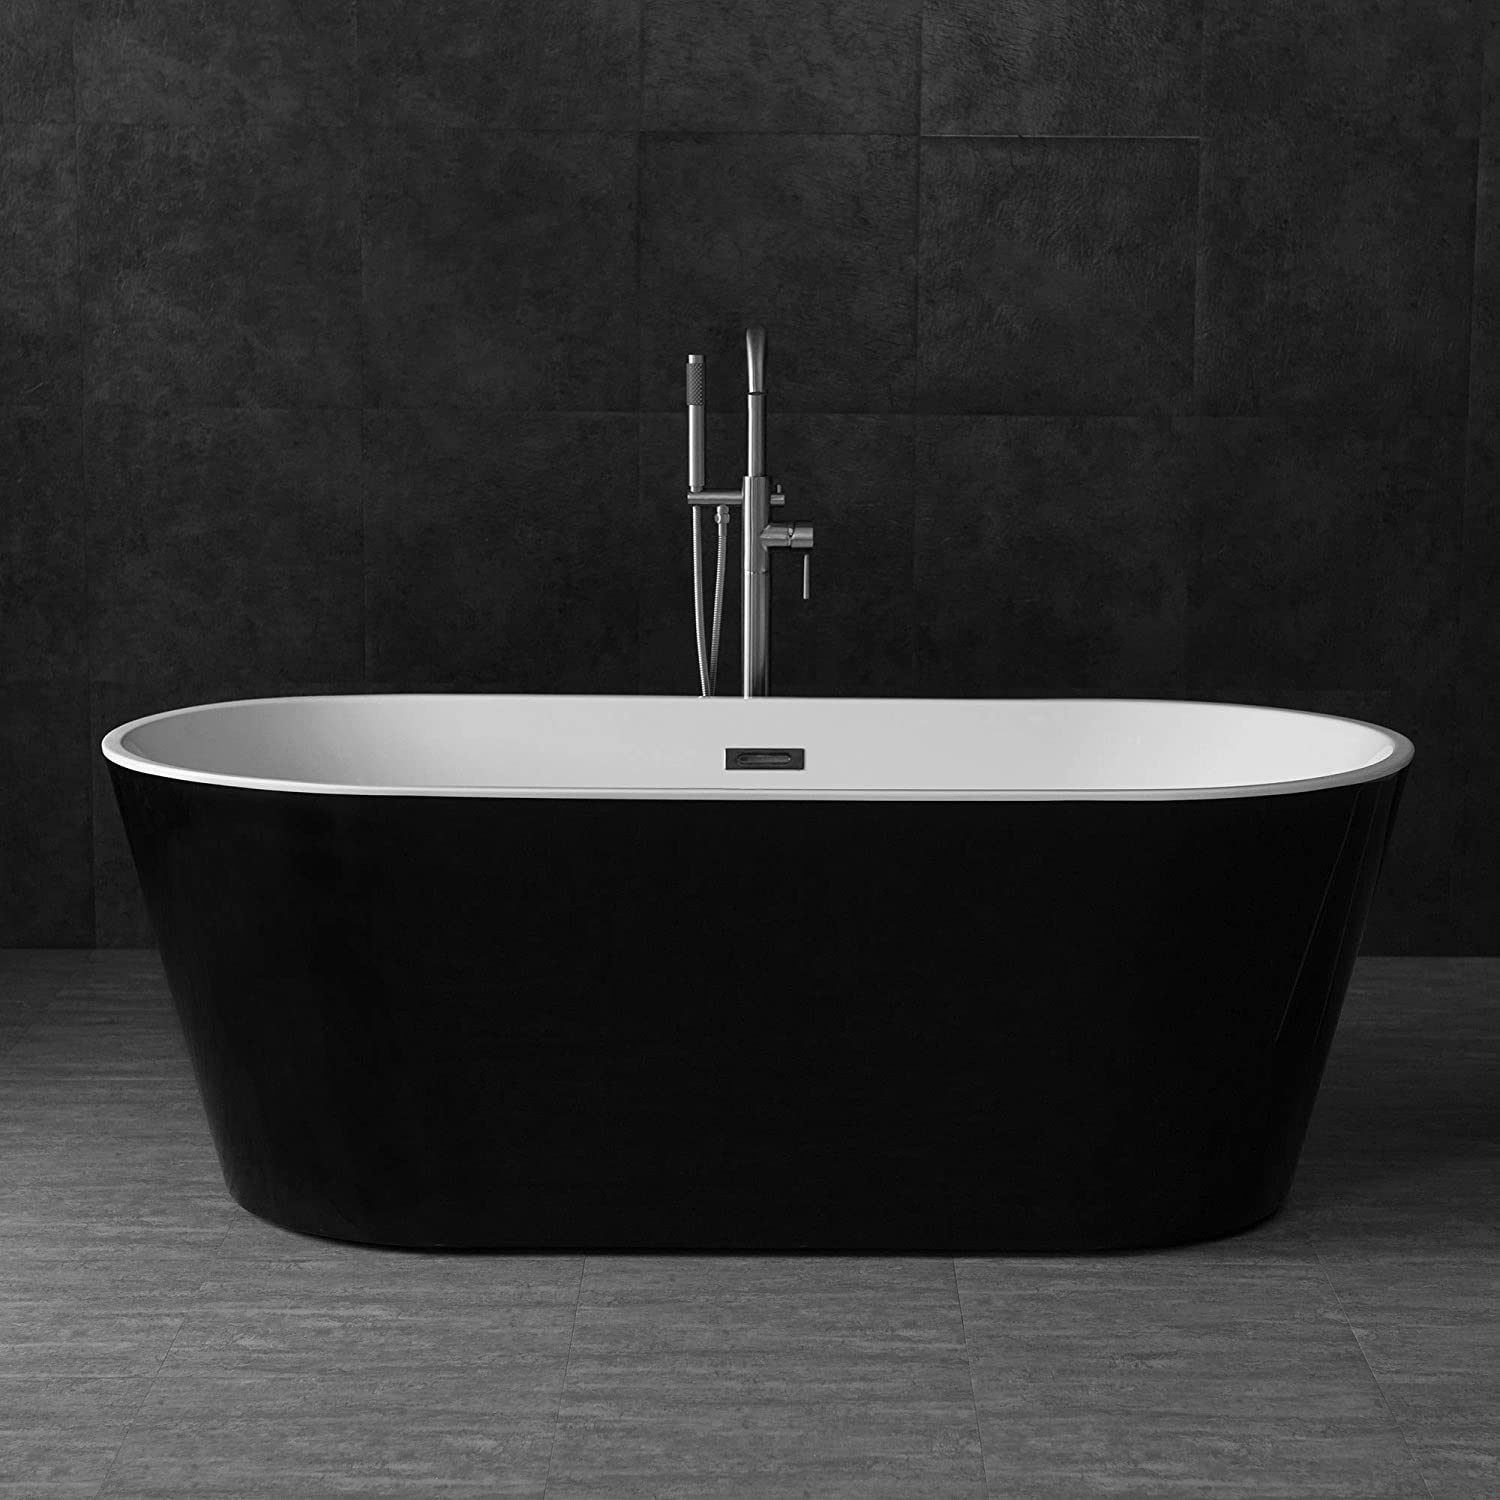 Woodbridge Acrylic Freestanding Bathtub Contemporary Soaking Tub With Brushed Nickel Overflow And Drain Color 67 B 1813 Black